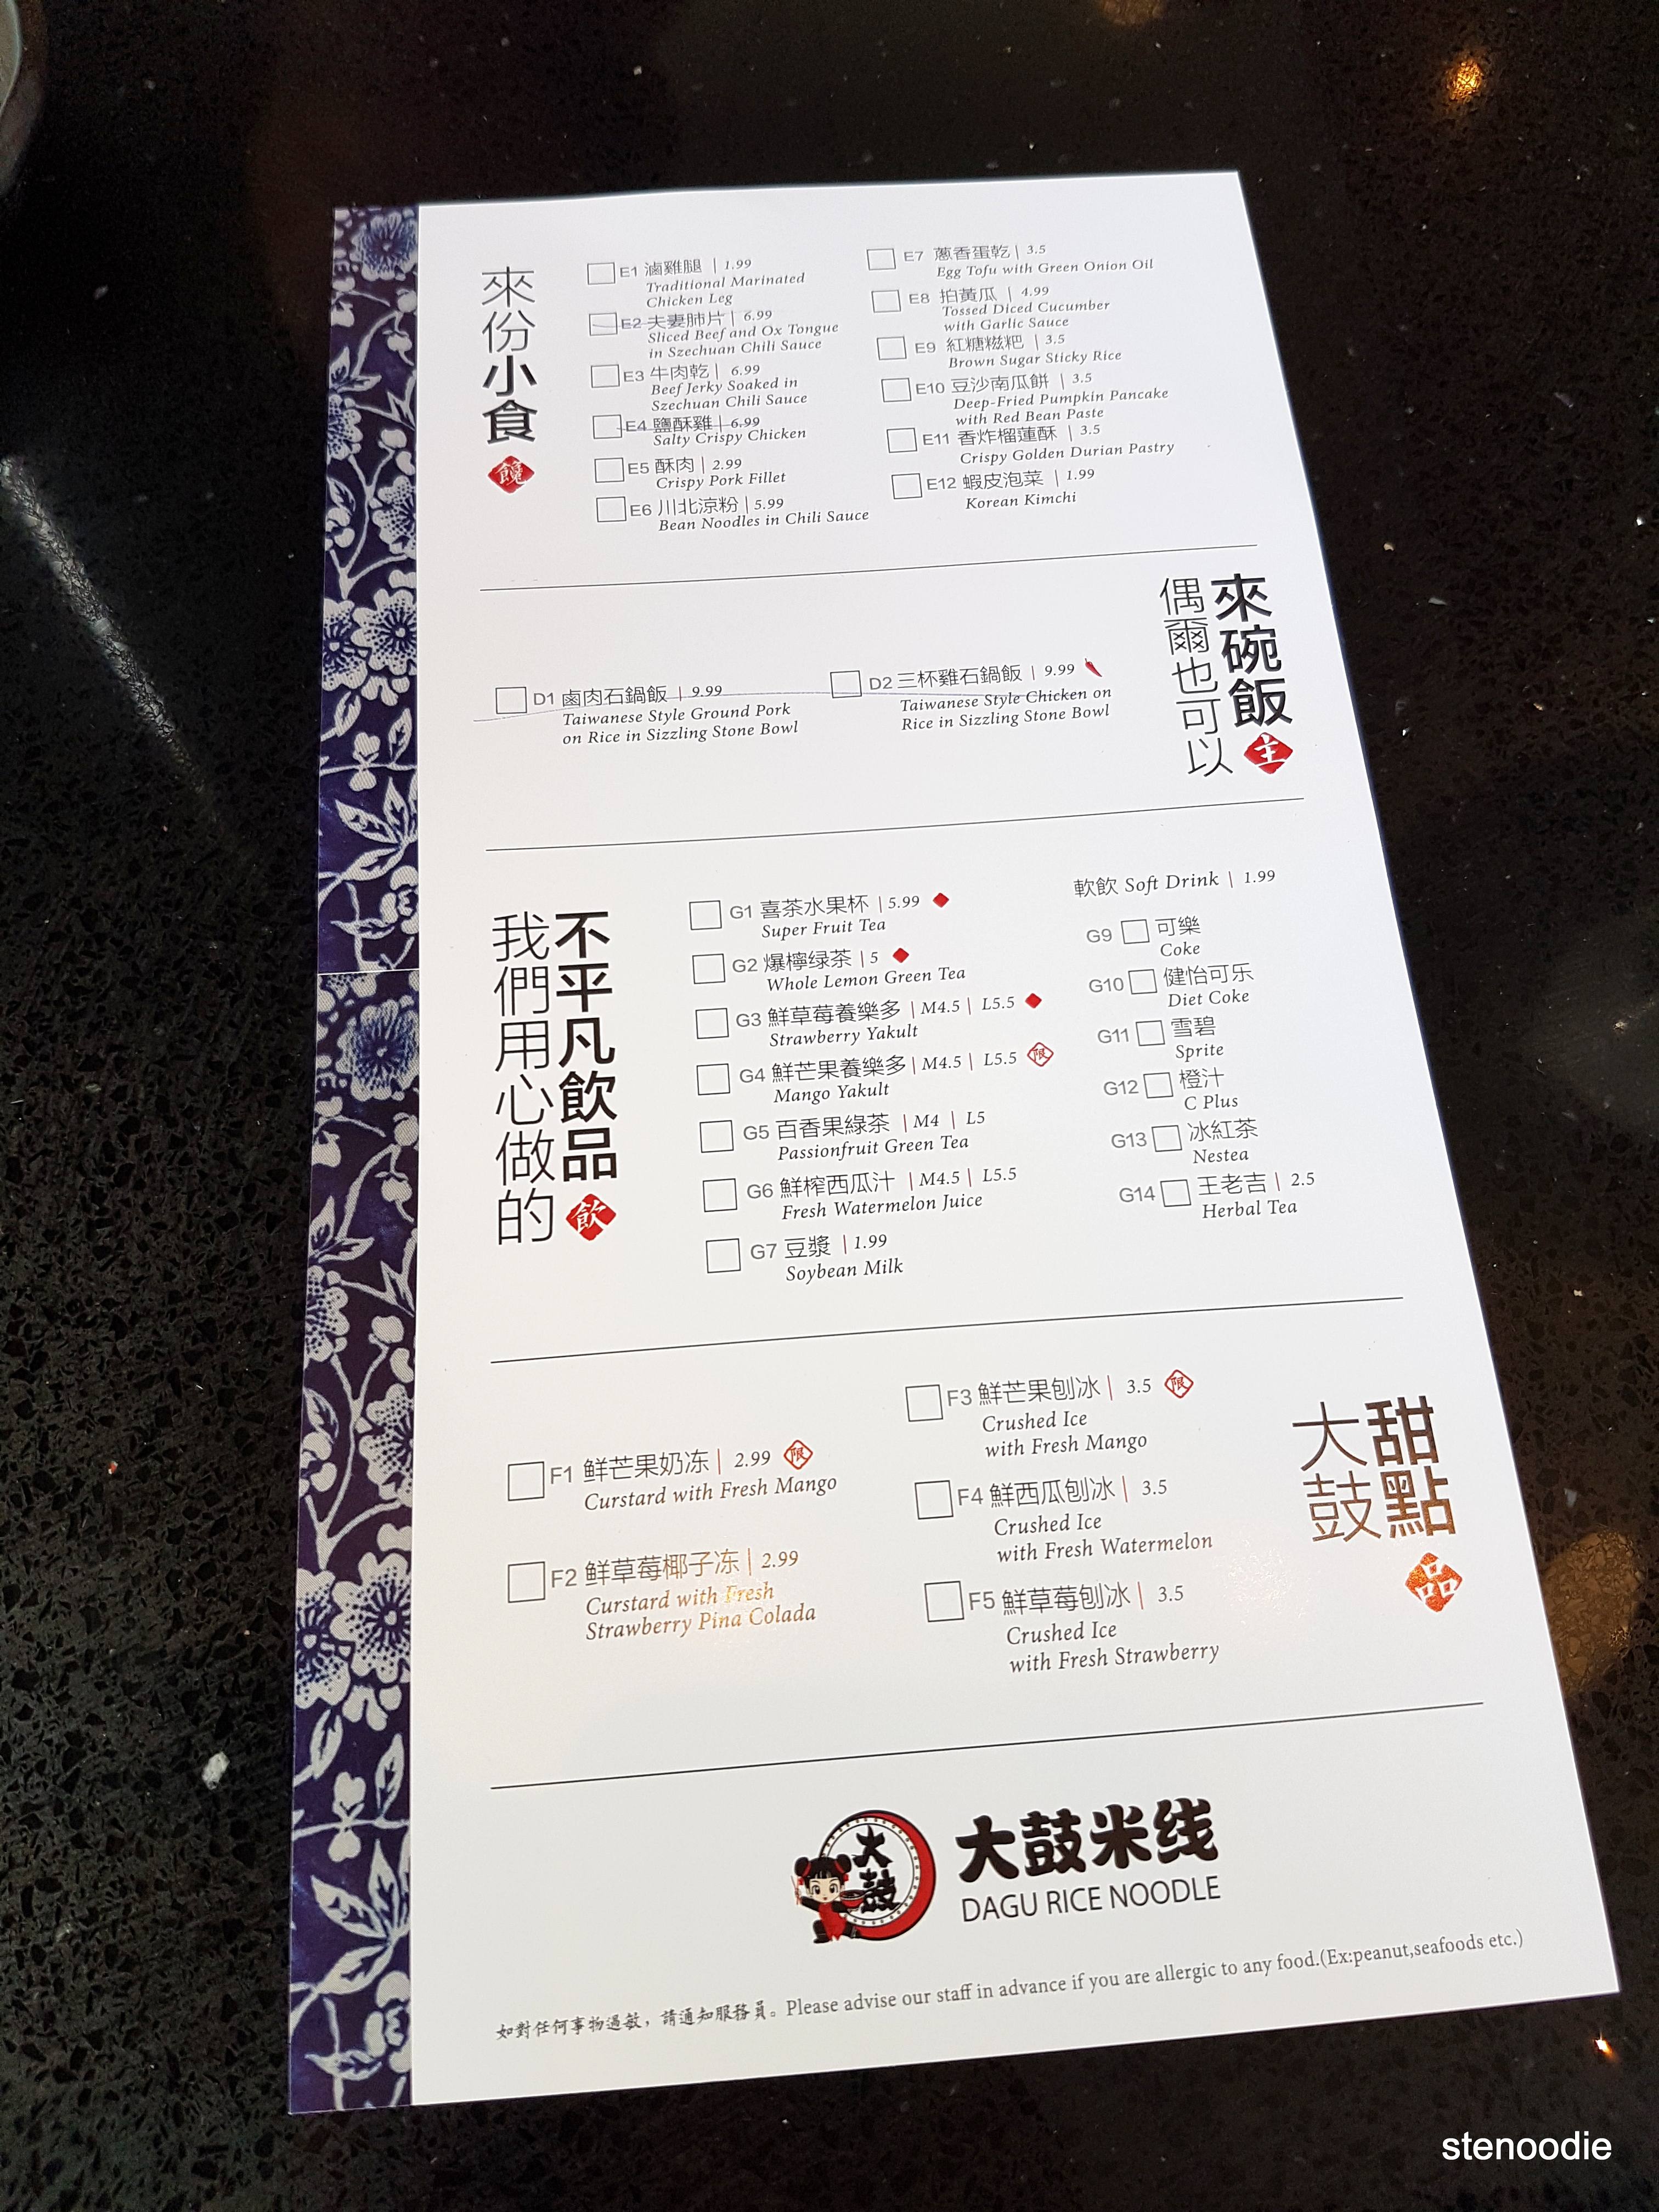 Dagu Rice Noodle menu and prices